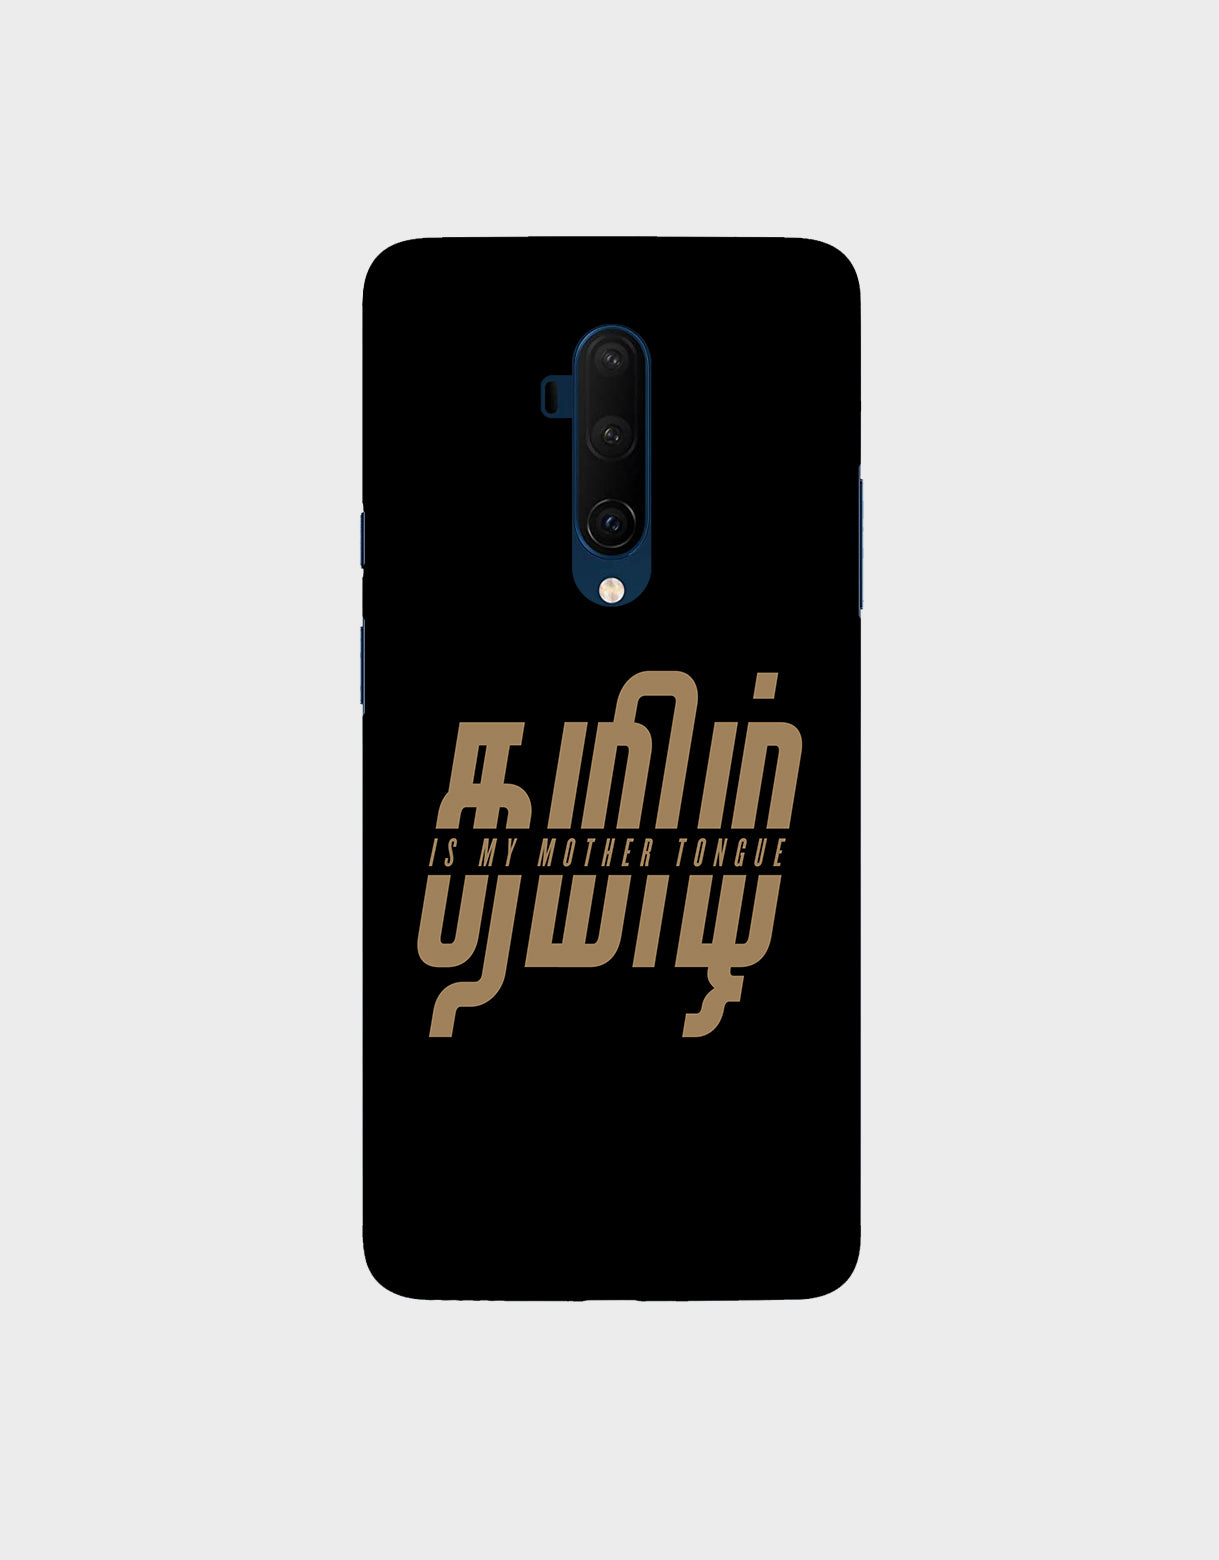 Tamil is my mother tonque -OnePlus 7T Pro McLaren EditionMobile covers